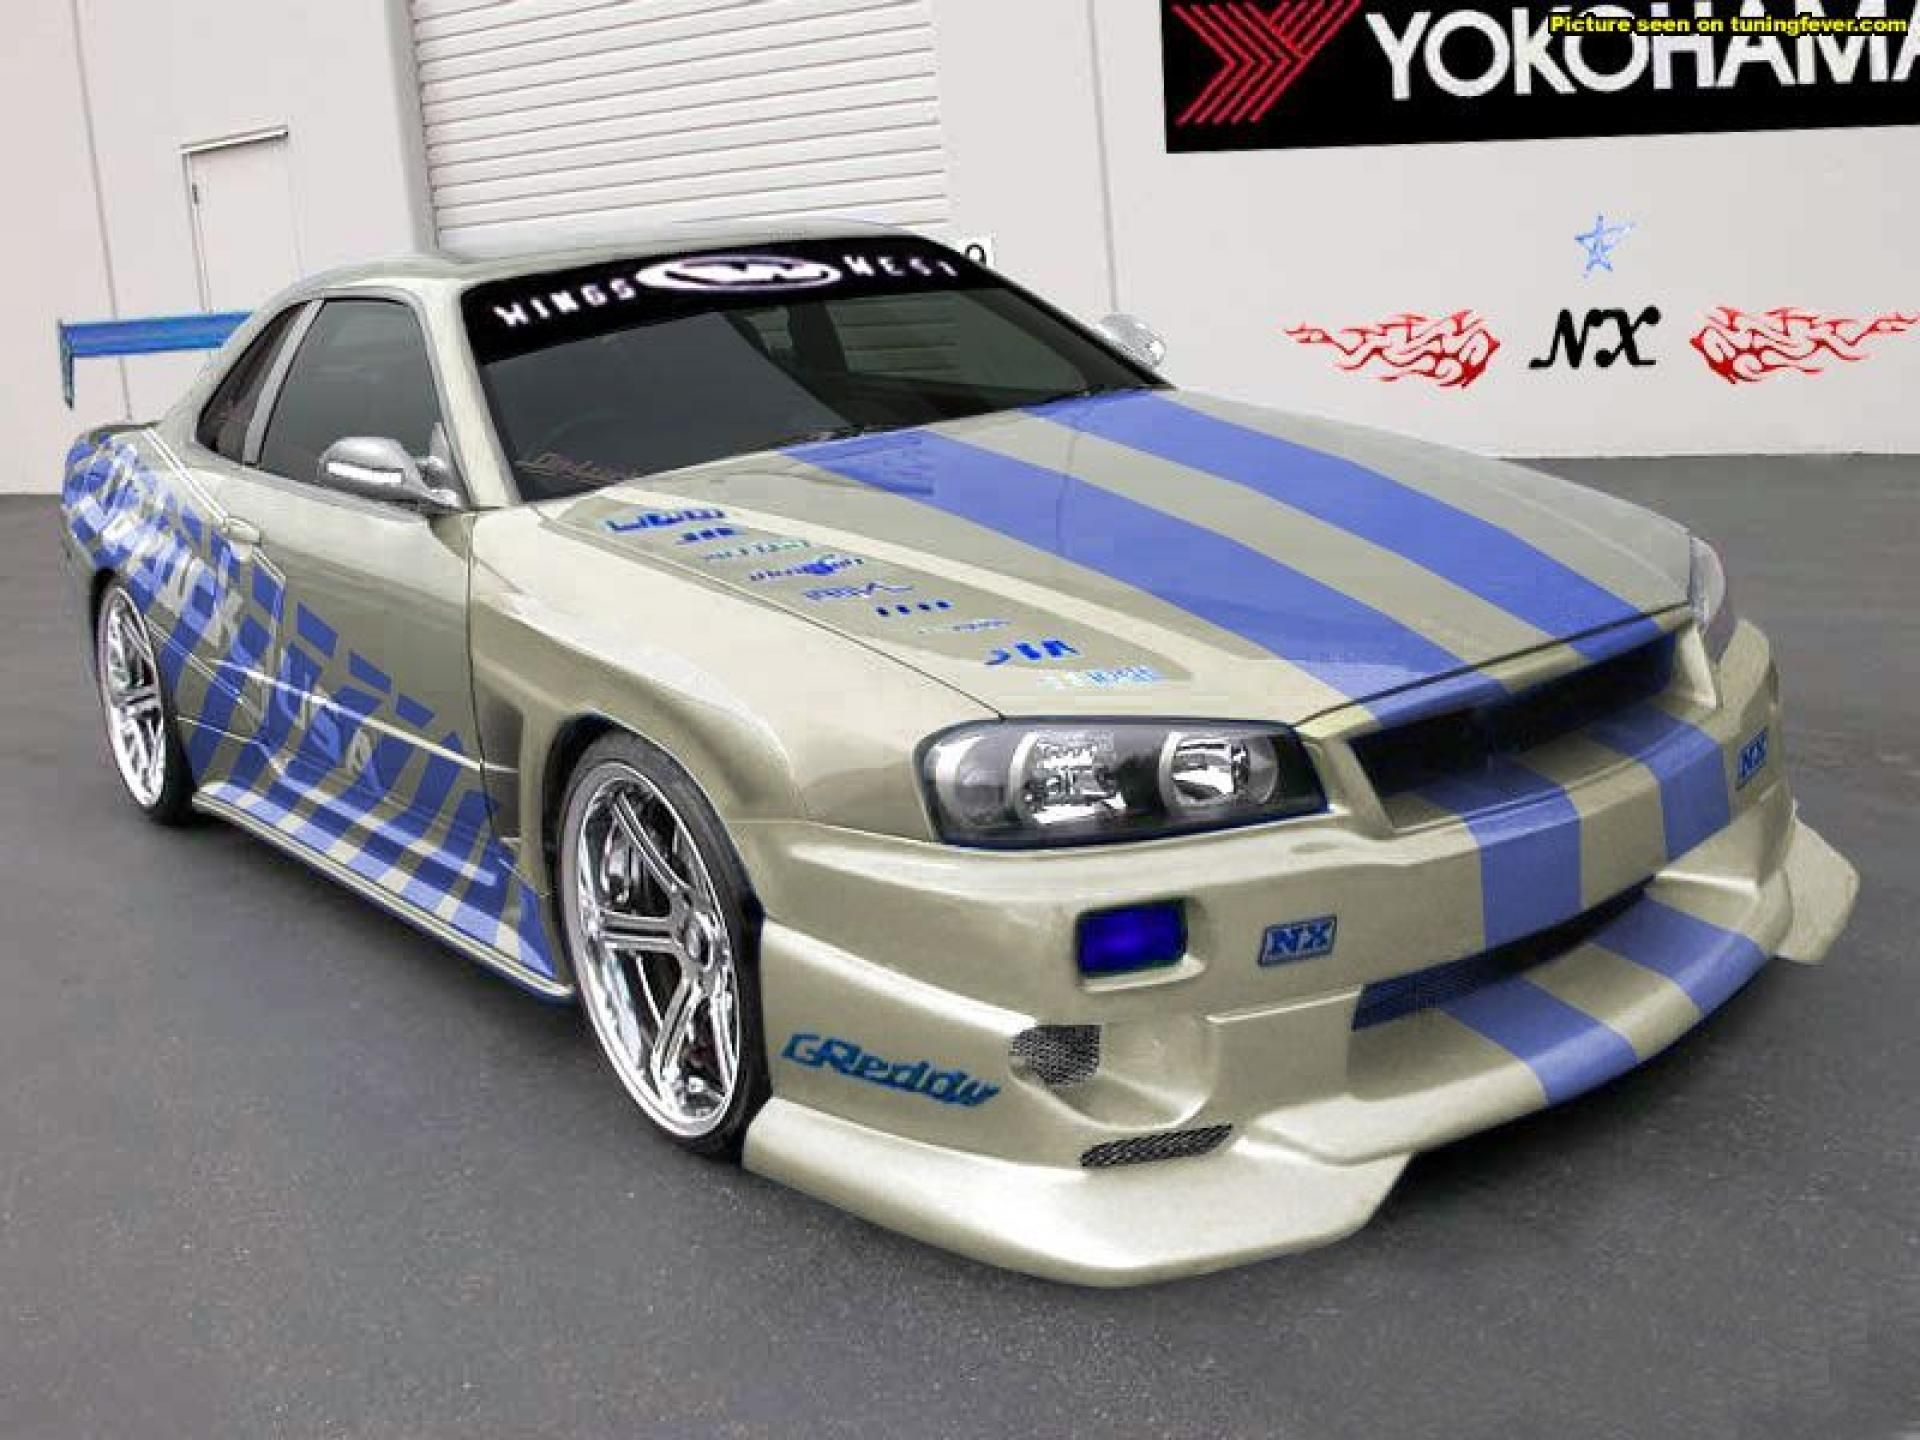 Nissan Skyline Gtr R34 Full Hd Desktop Wallpapers โปรเจกต น าลอง